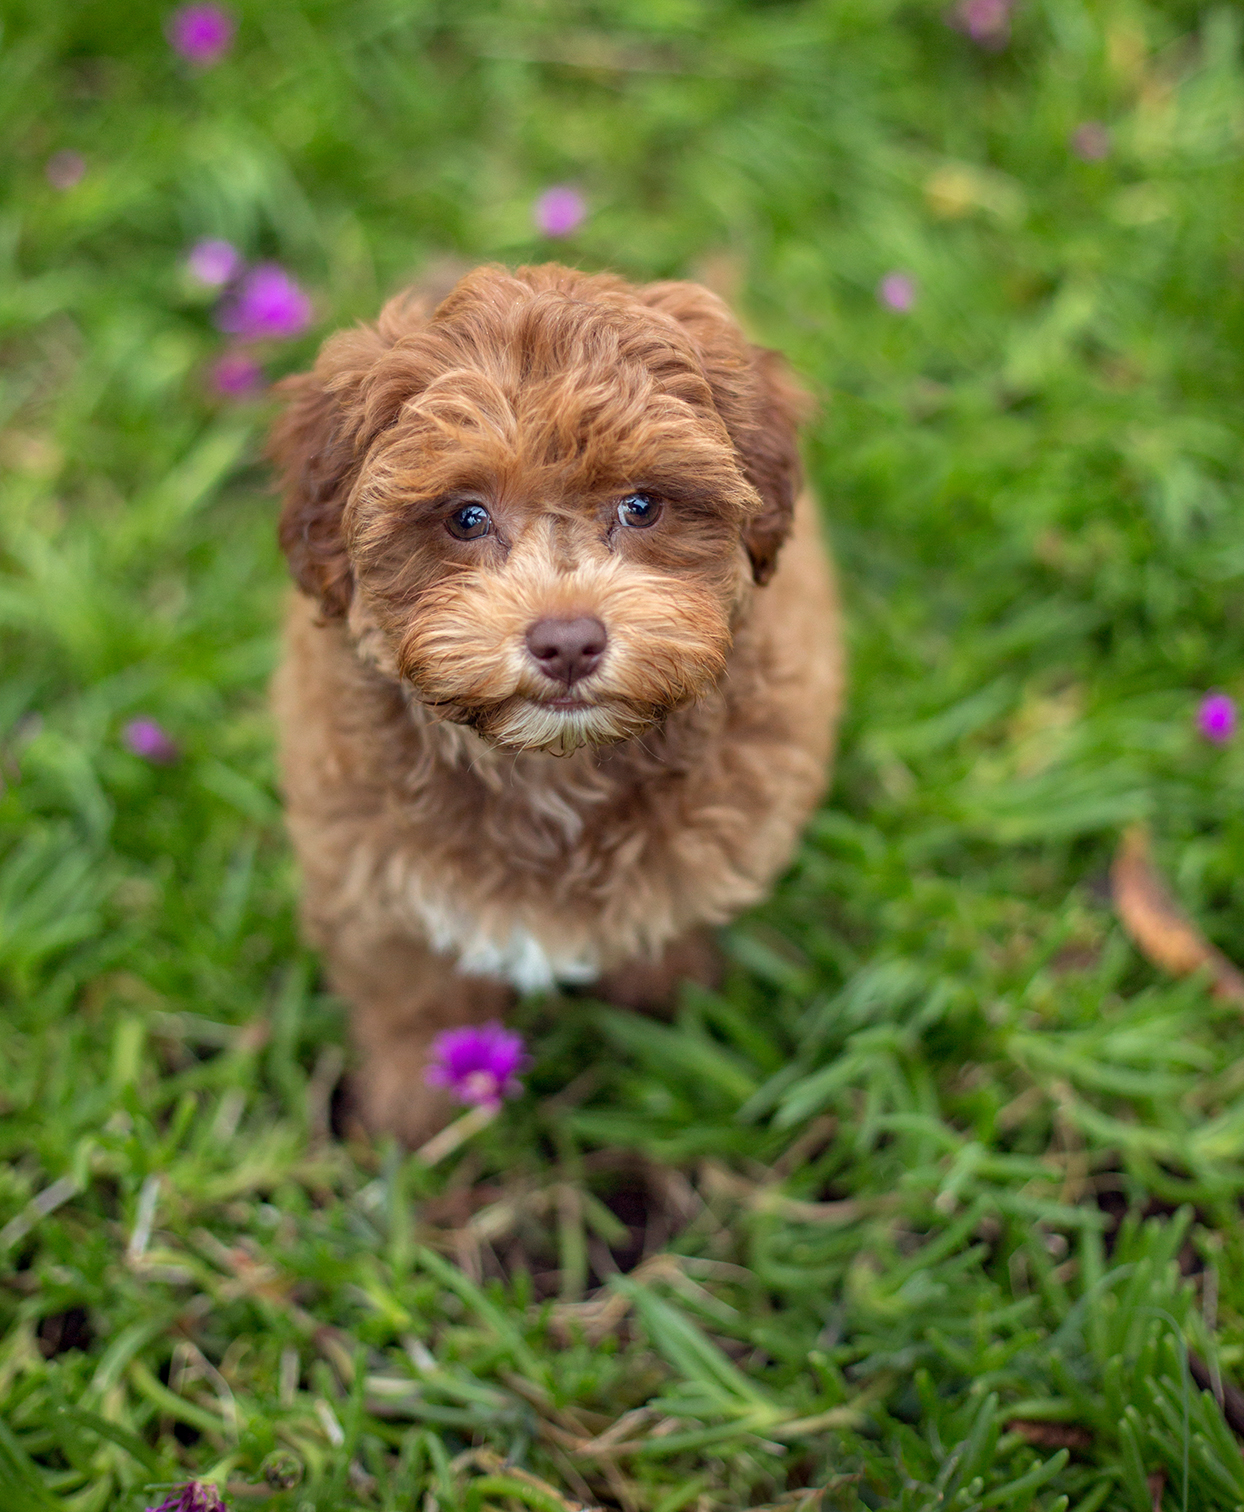 Caramel havapoo pup stands in grass with purple flowers